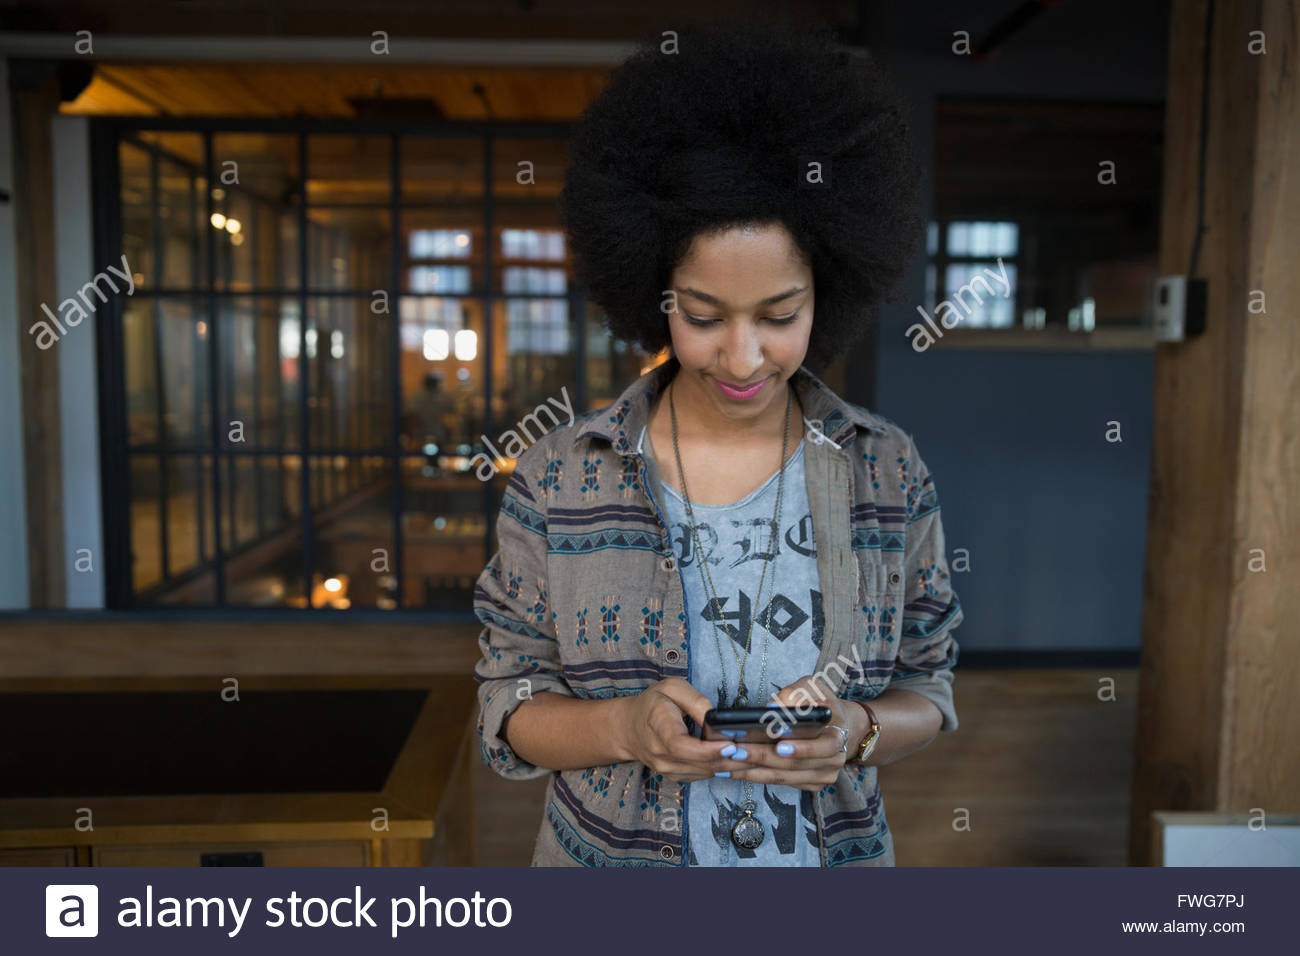 Woman texting in office - Stock Image